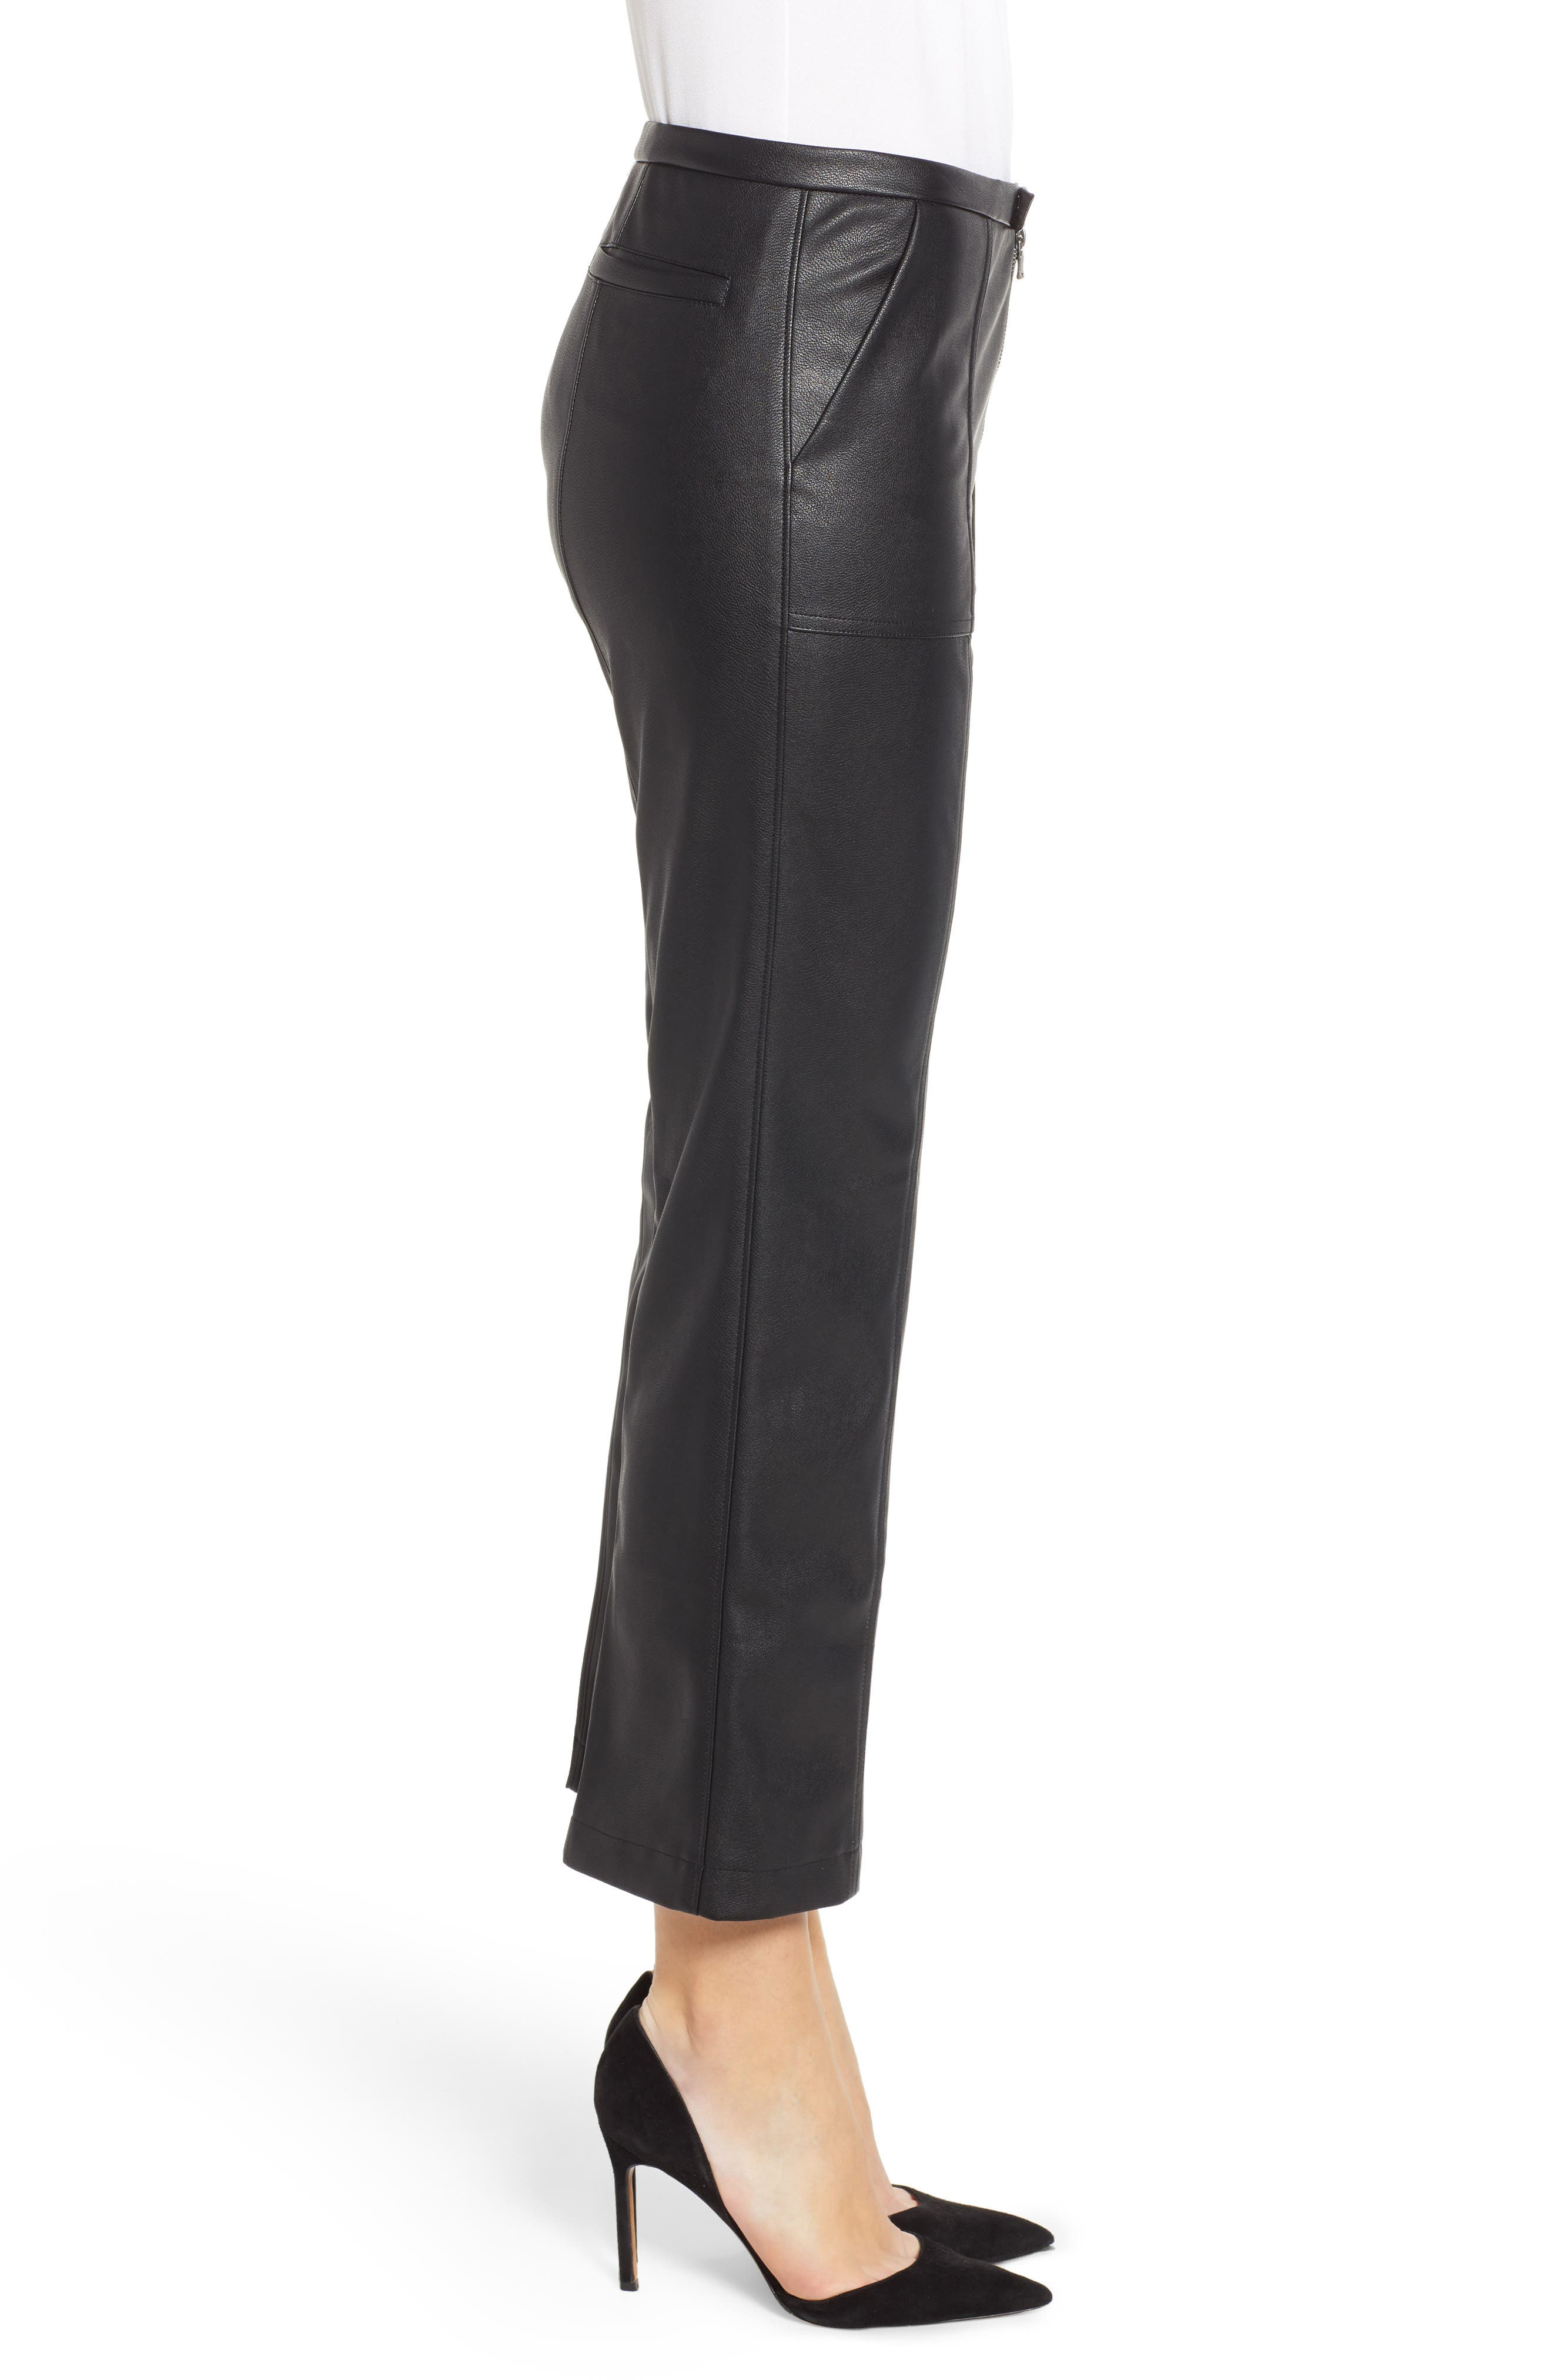 DAVID LERNER, Pintuck Flare Faux Leather Trousers, Alternate thumbnail 4, color, 001